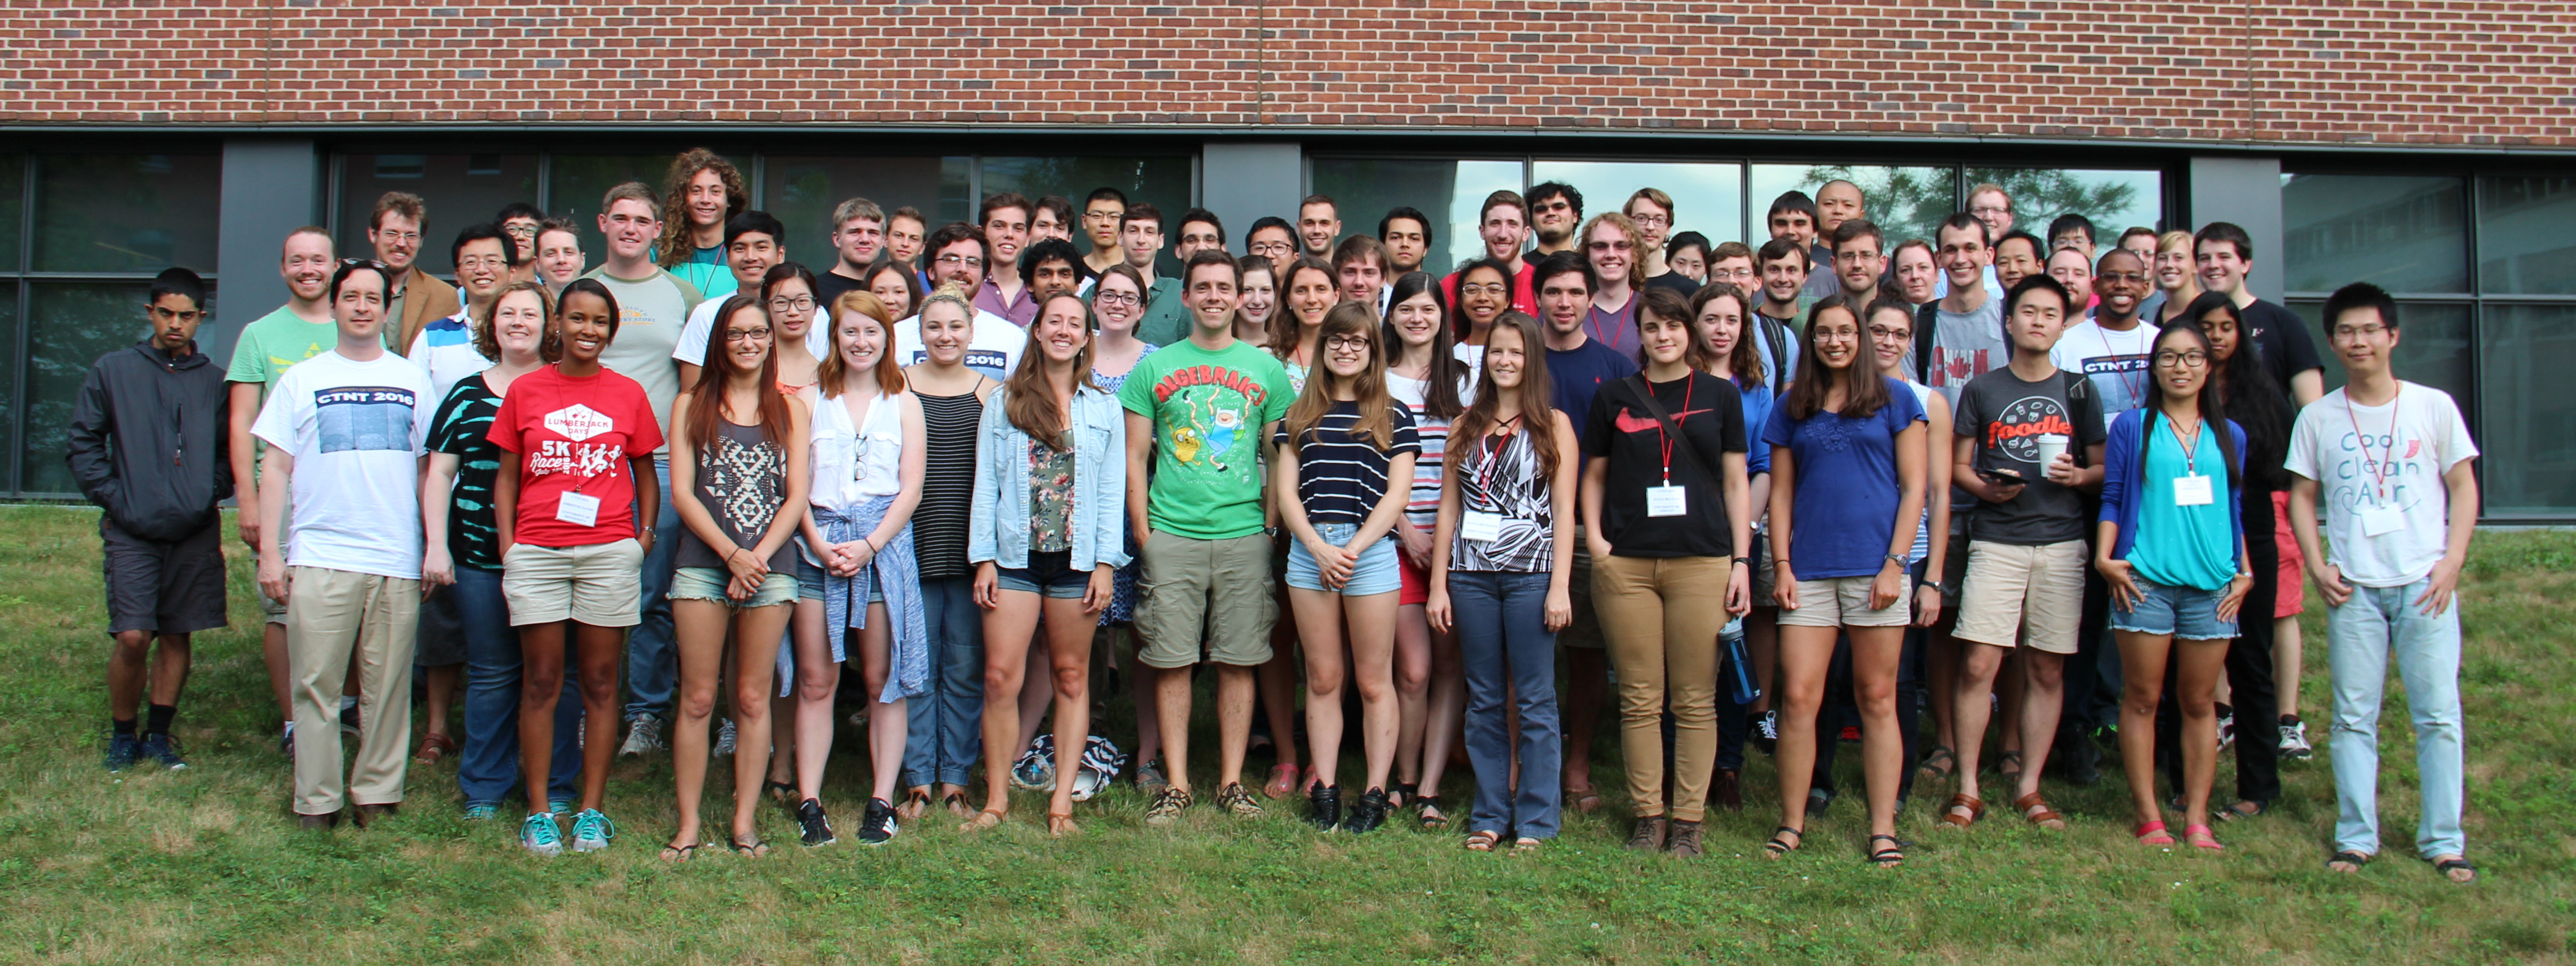 CTNT 2016 Summer School group photo